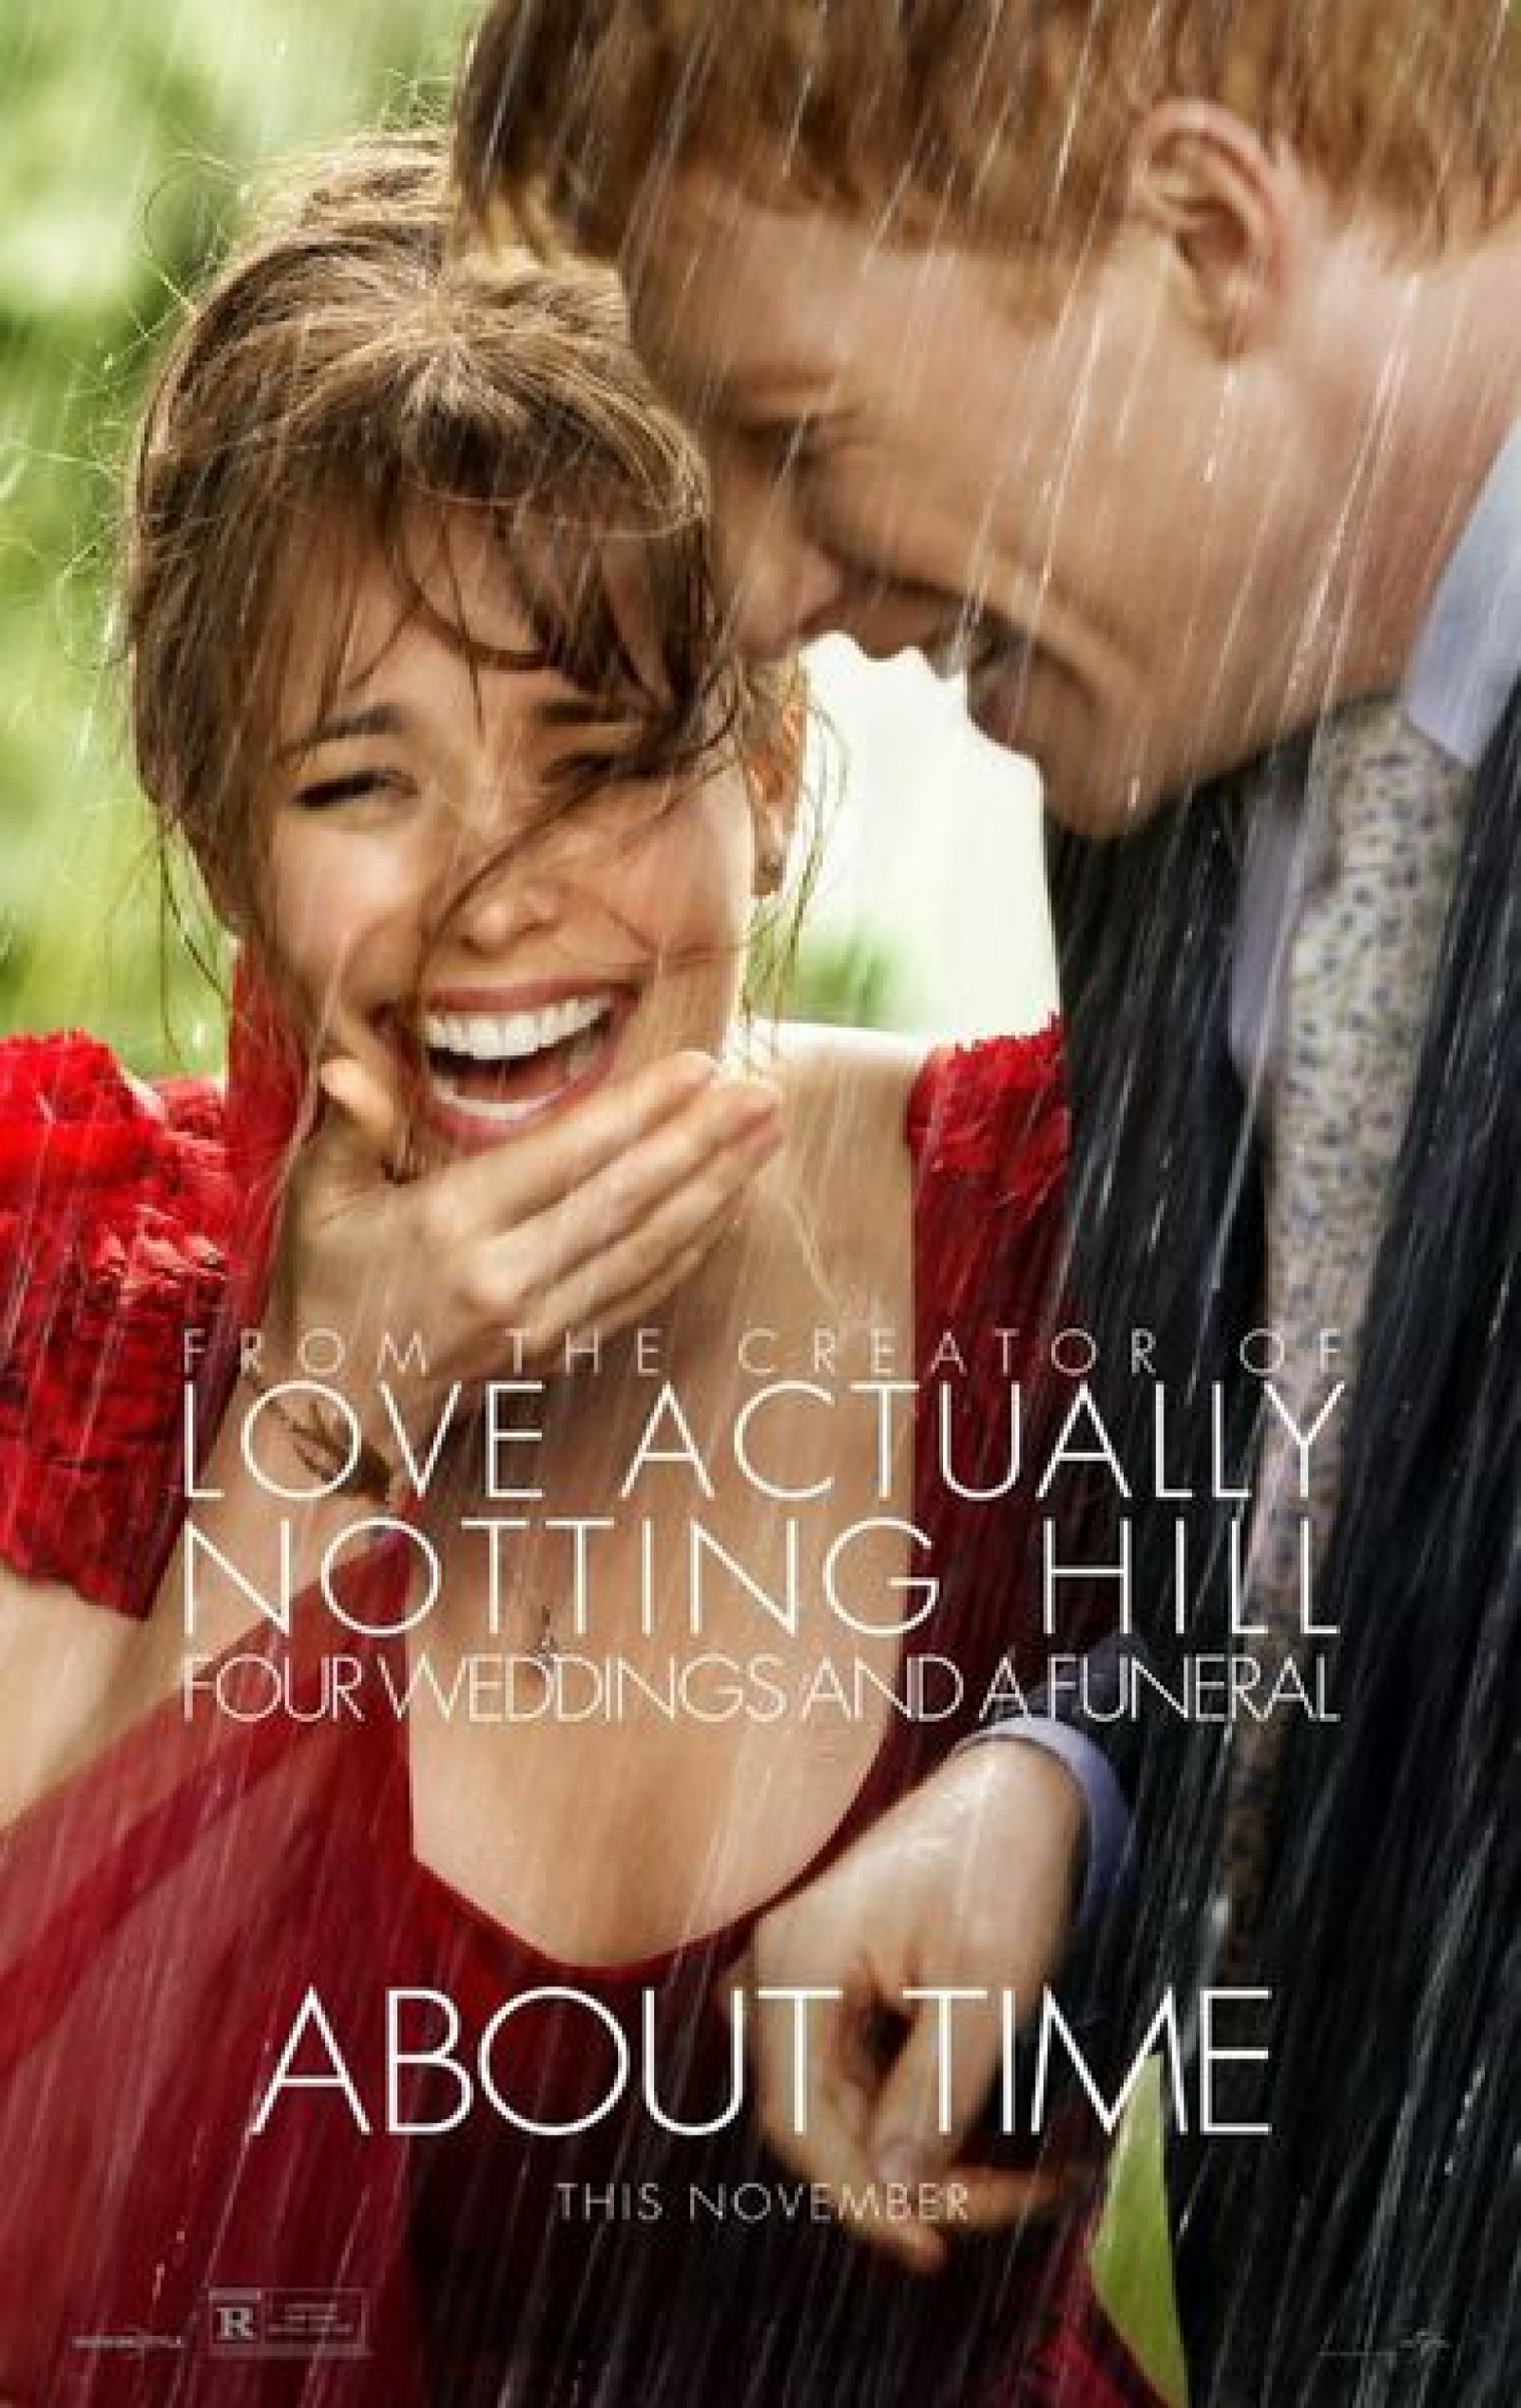 About Time 2013 Cinema Poster.jpg